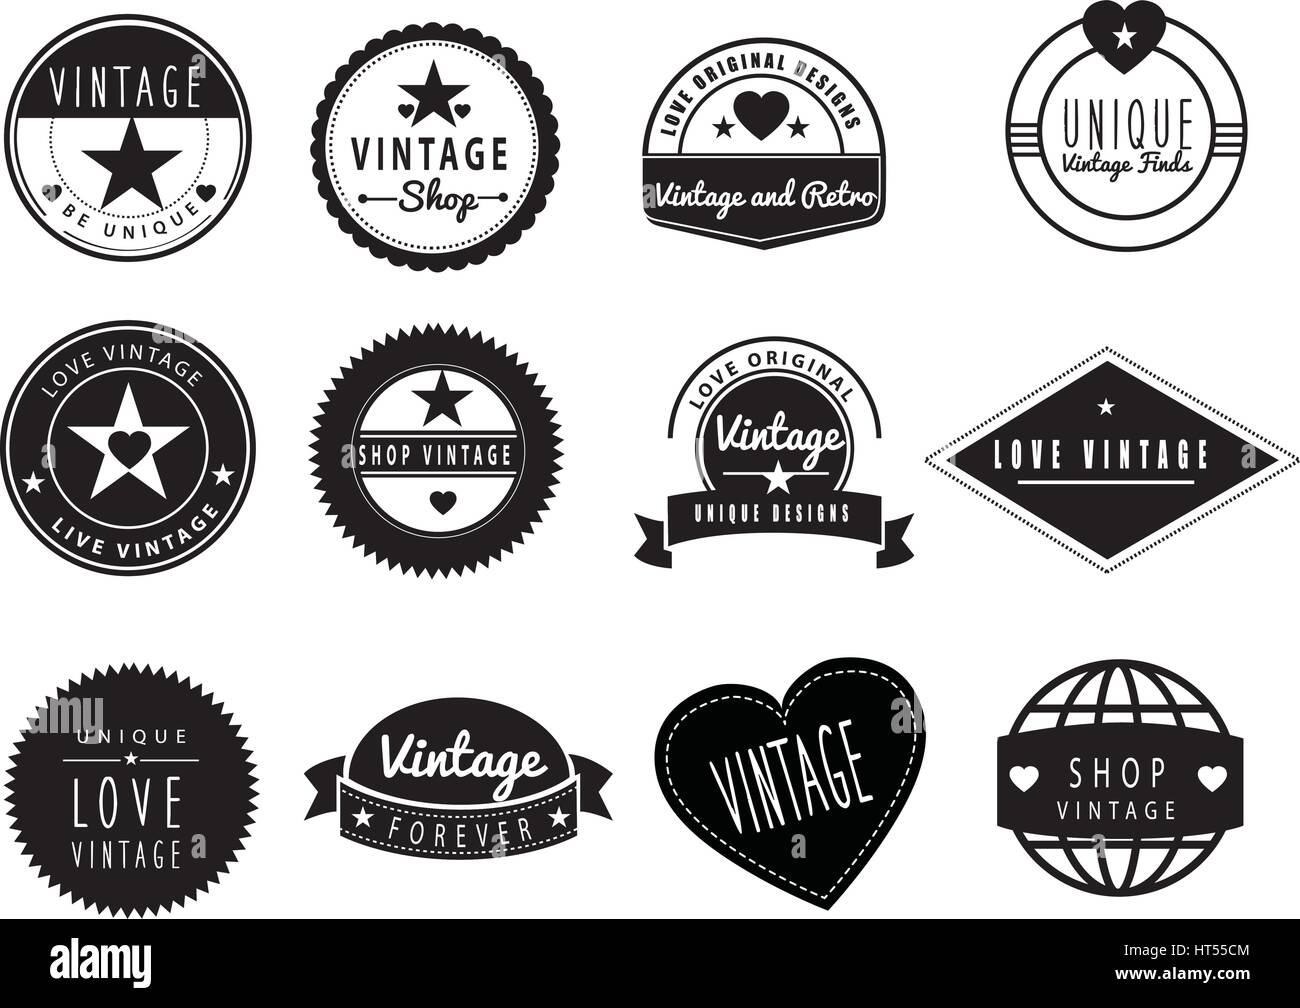 SET OF BLACK AND WHITE GRAPHIC DESIGN LOGO IDEAS For A Vintage Or Retro Shop Store